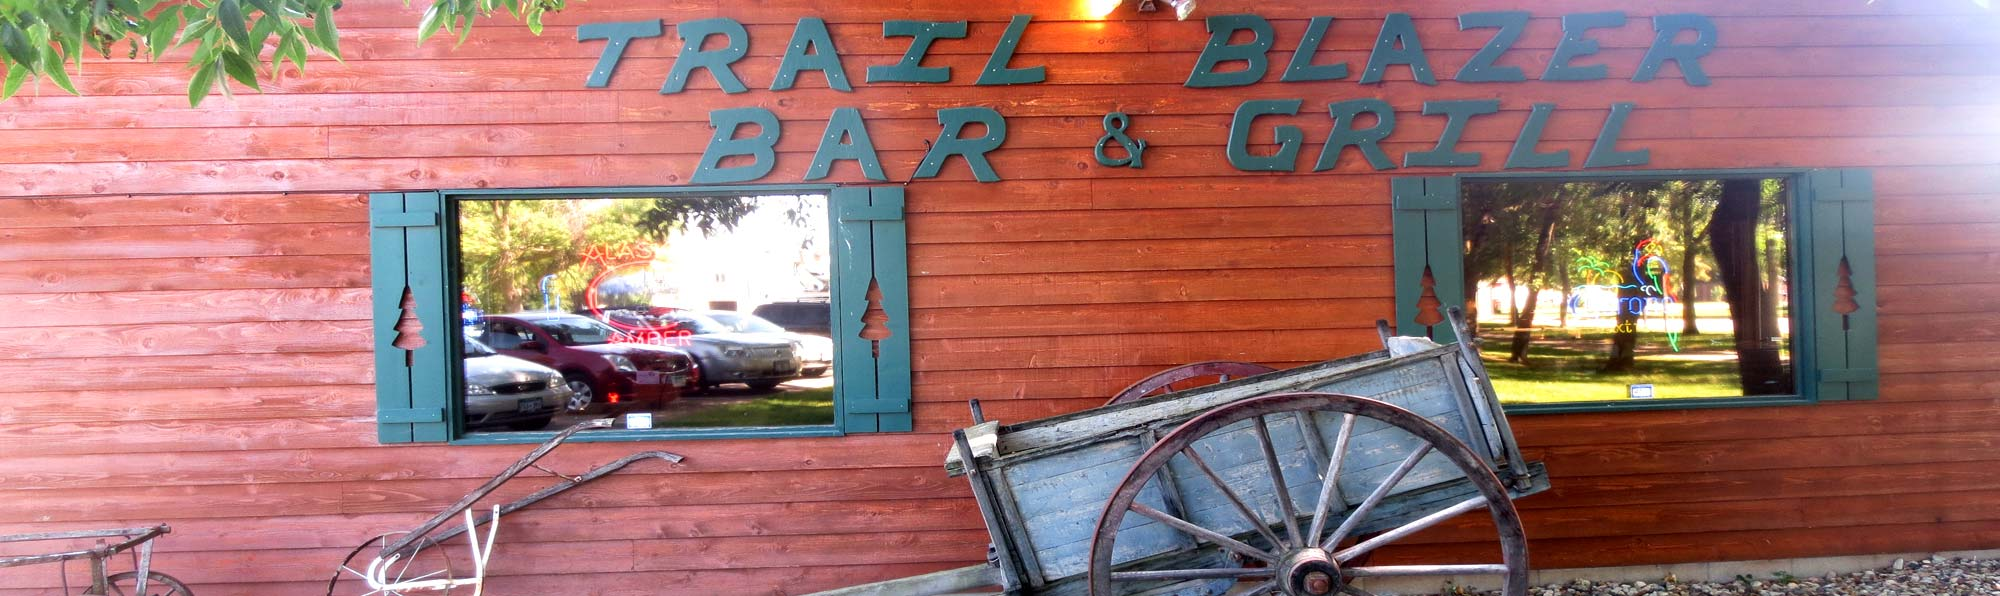 Exterior of Trailblazer Bar & Grill in Madison Lake, MN